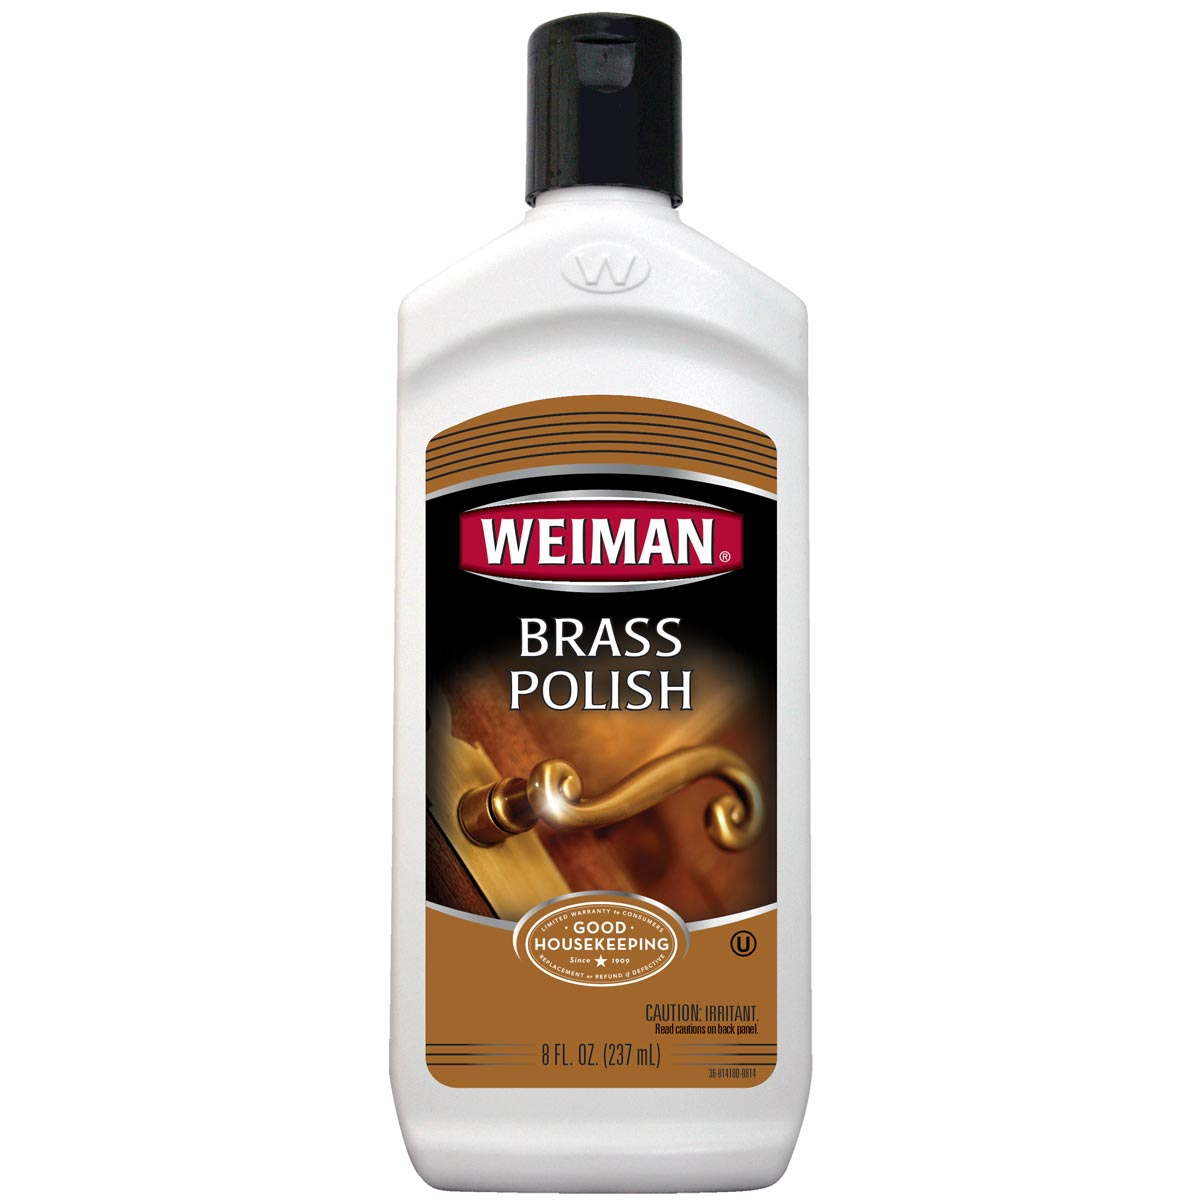 https://googone.com/media/catalog/product/w/e/weiman-brass-polish_front.jpg